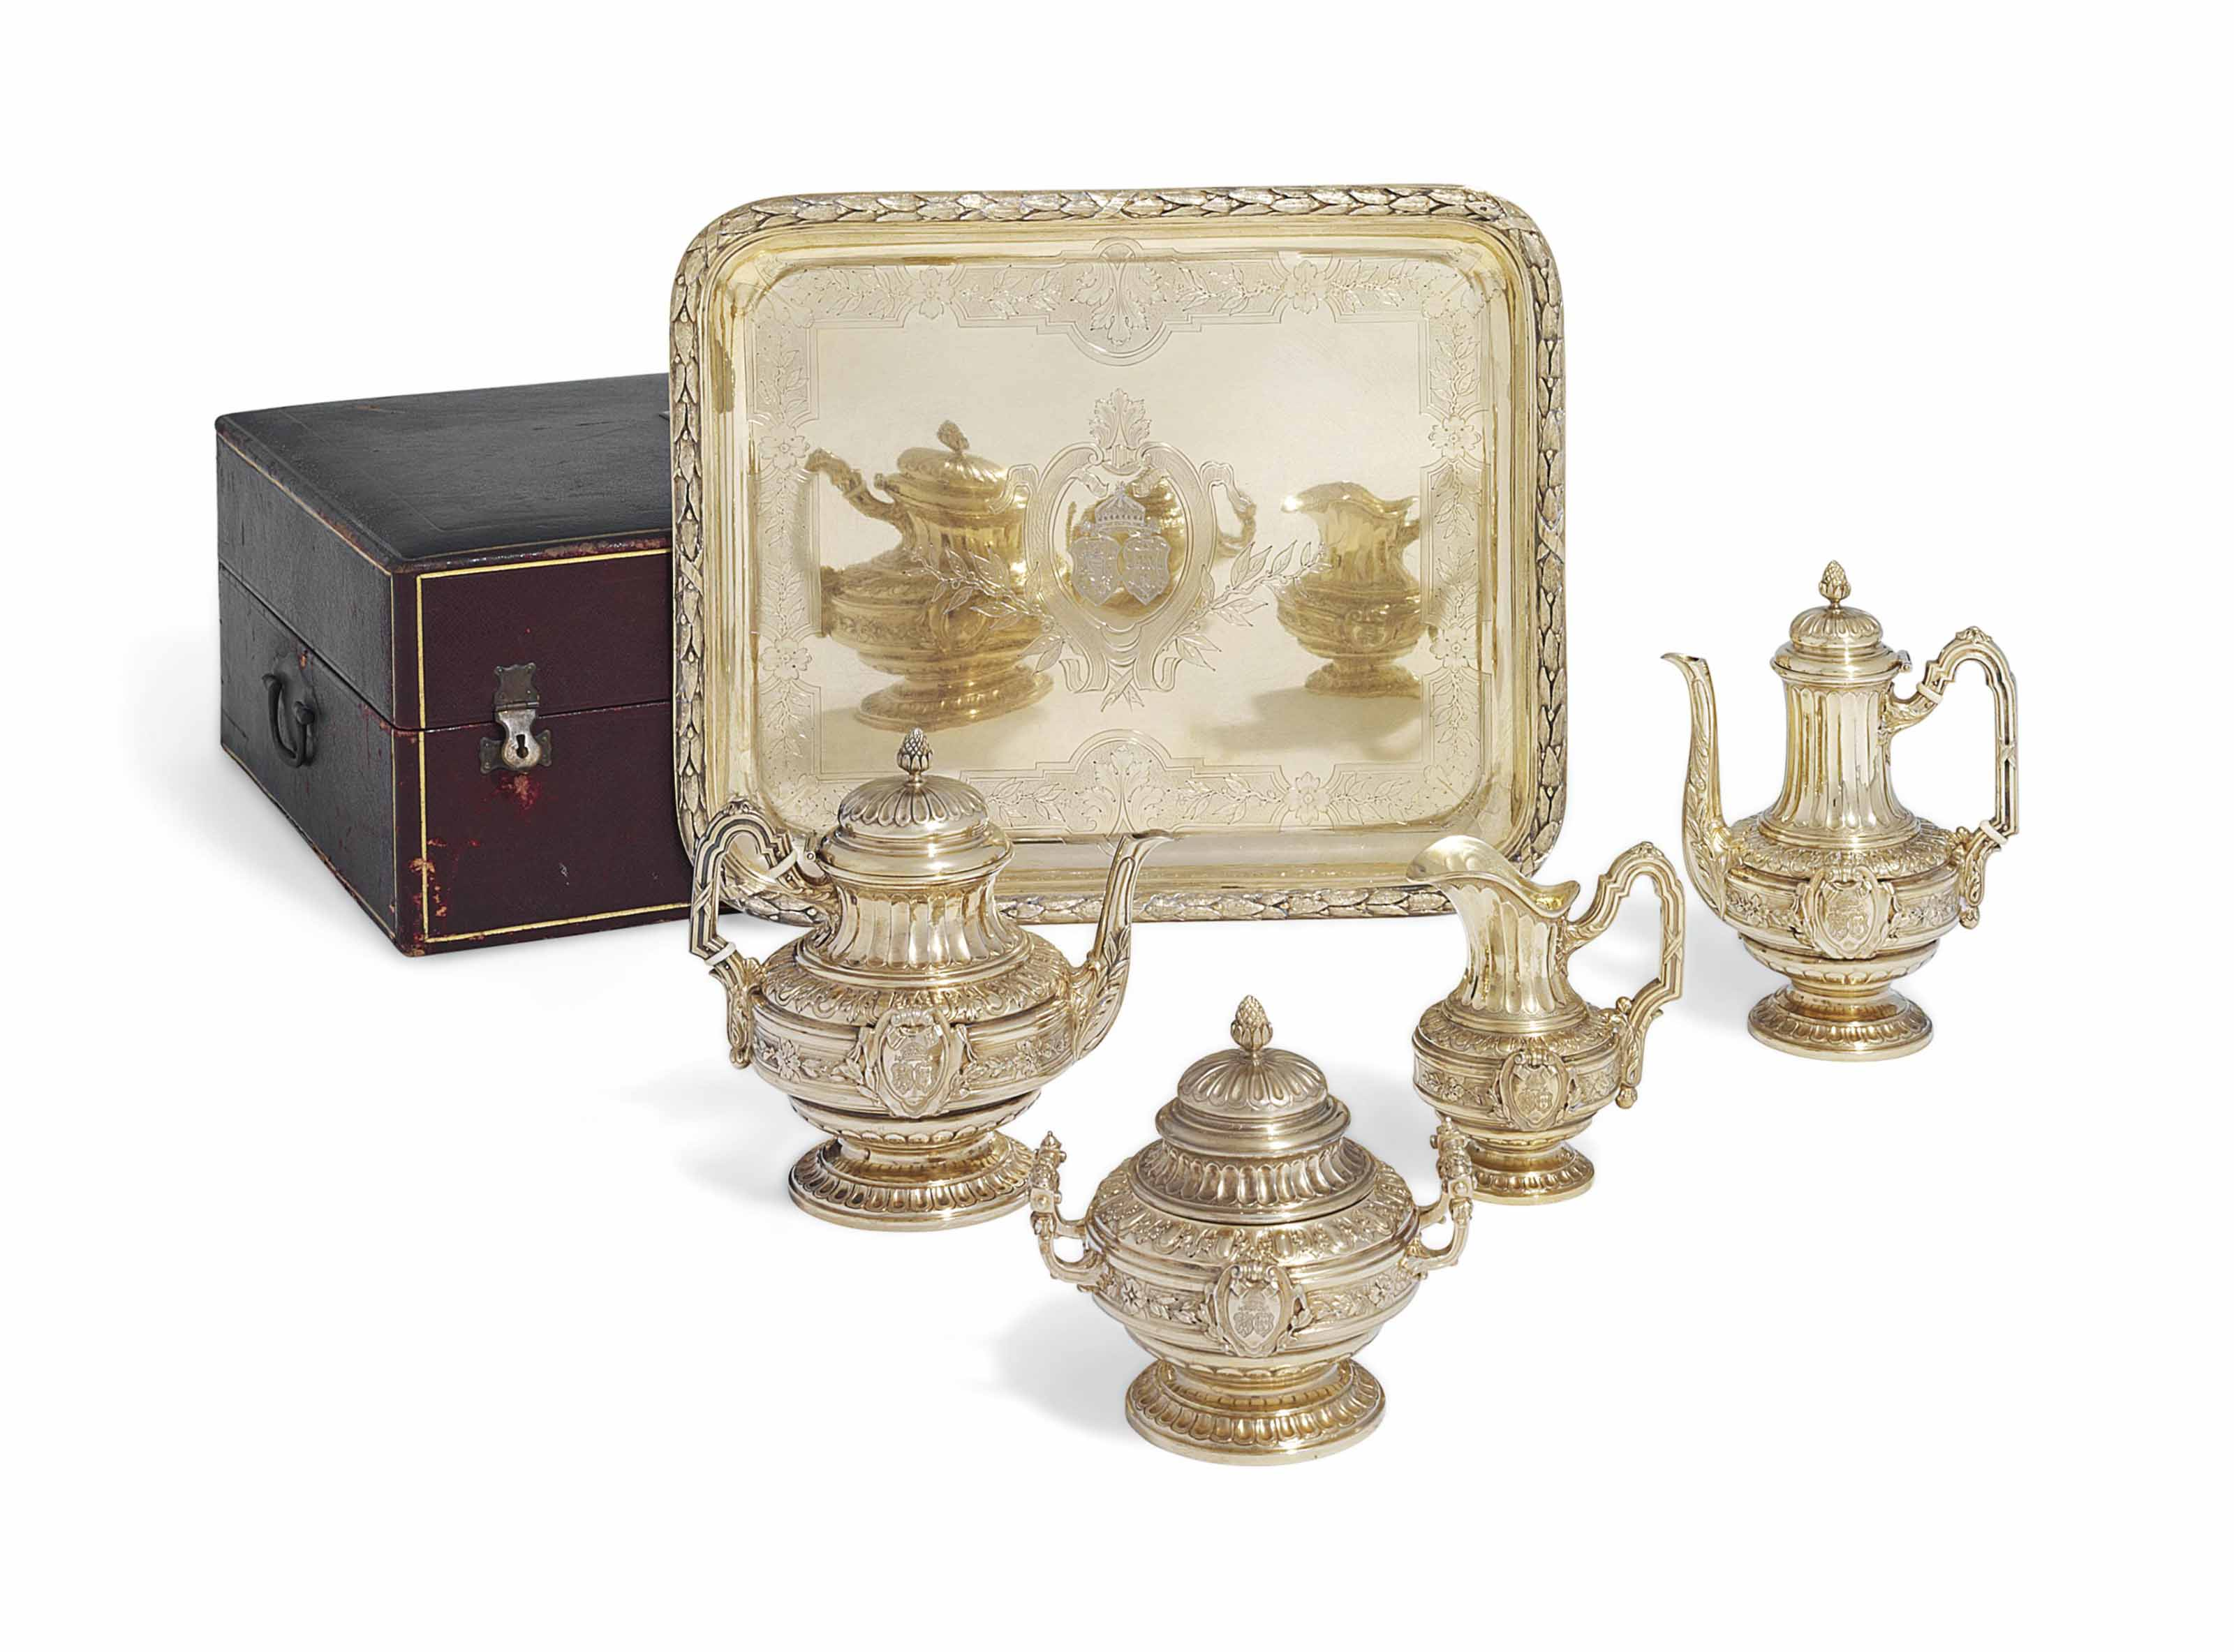 A FRENCH SILVER-GILT FOUR-PIECE TEA AND COFFEE SERVICE